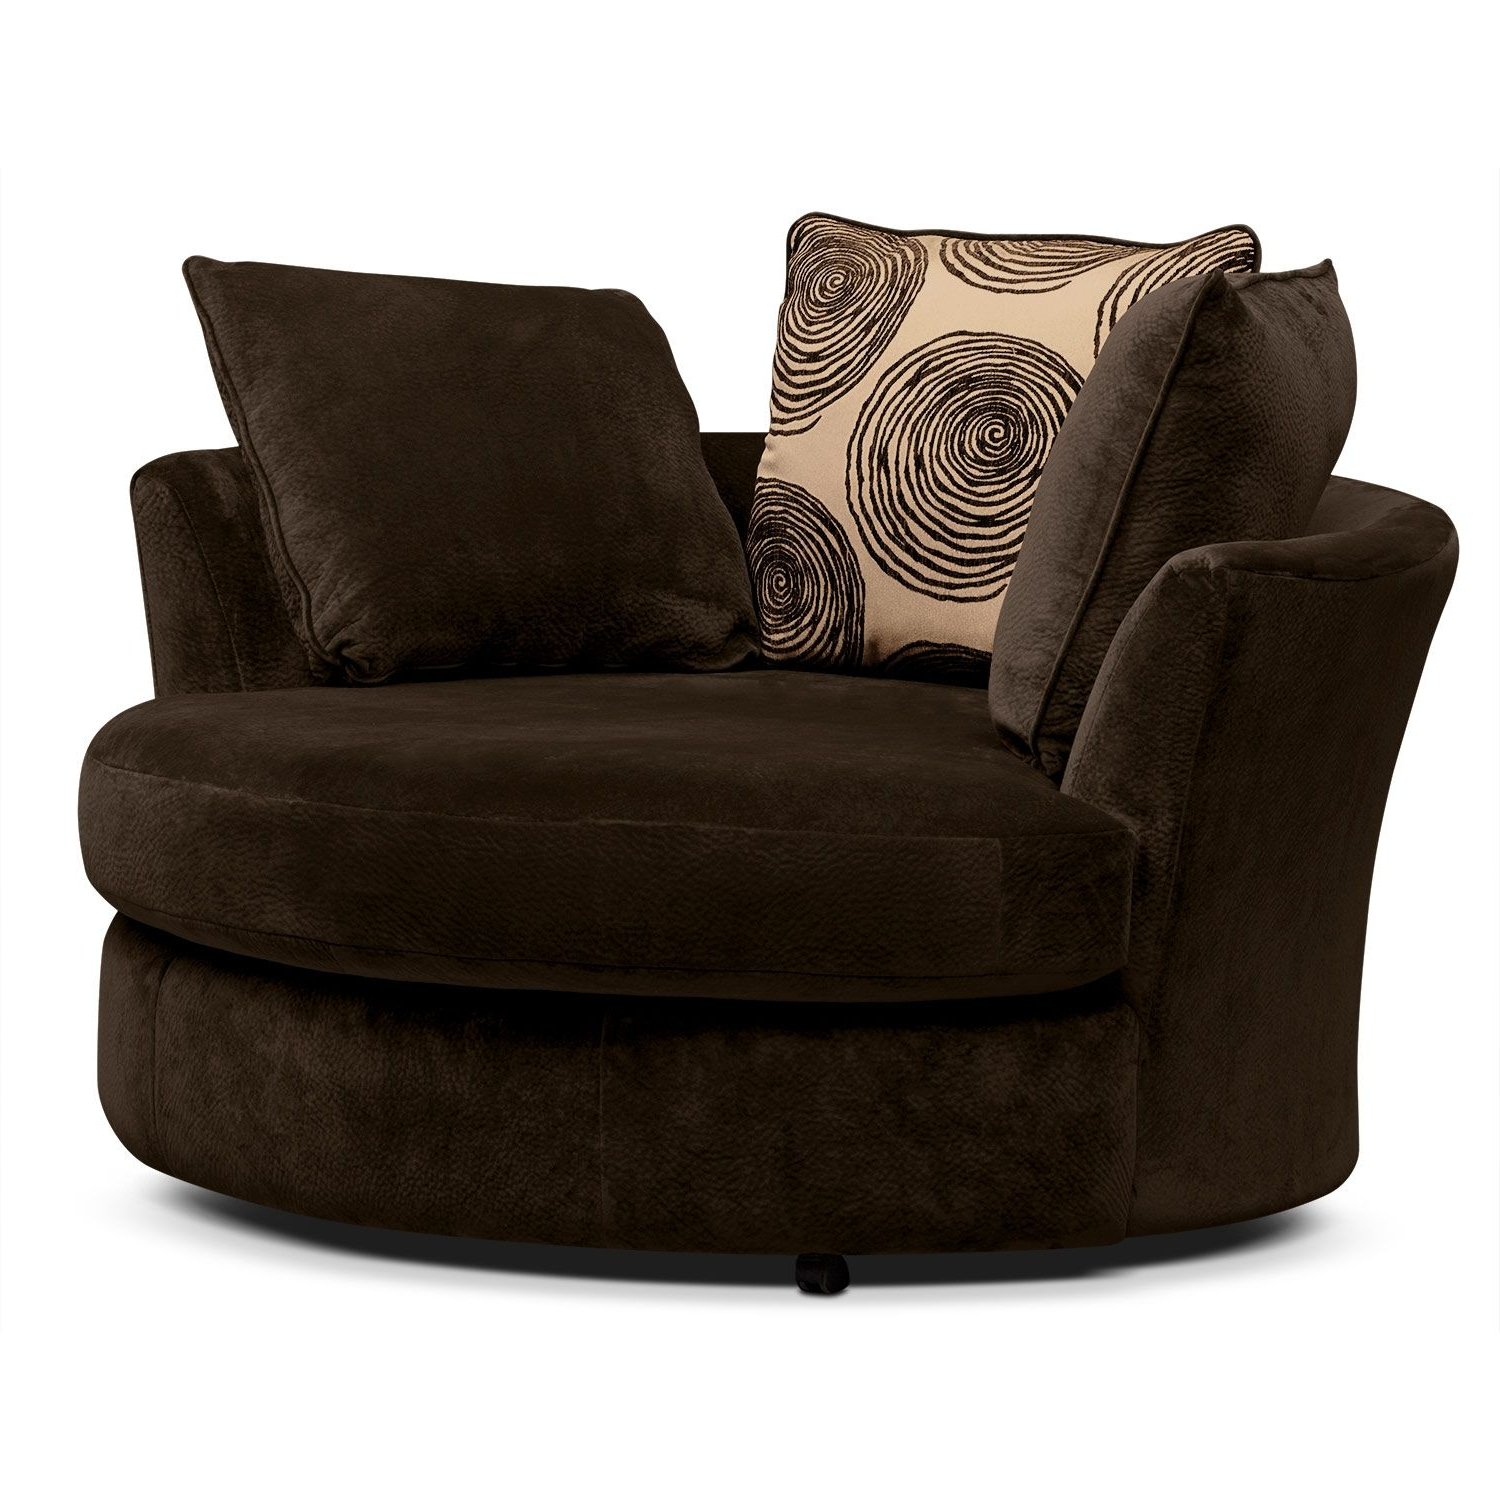 Newest Round Sofa Chair Living Room Furniture Within Living Room Furniture Catalina Chocolate Swivel Chair (View 9 of 20)